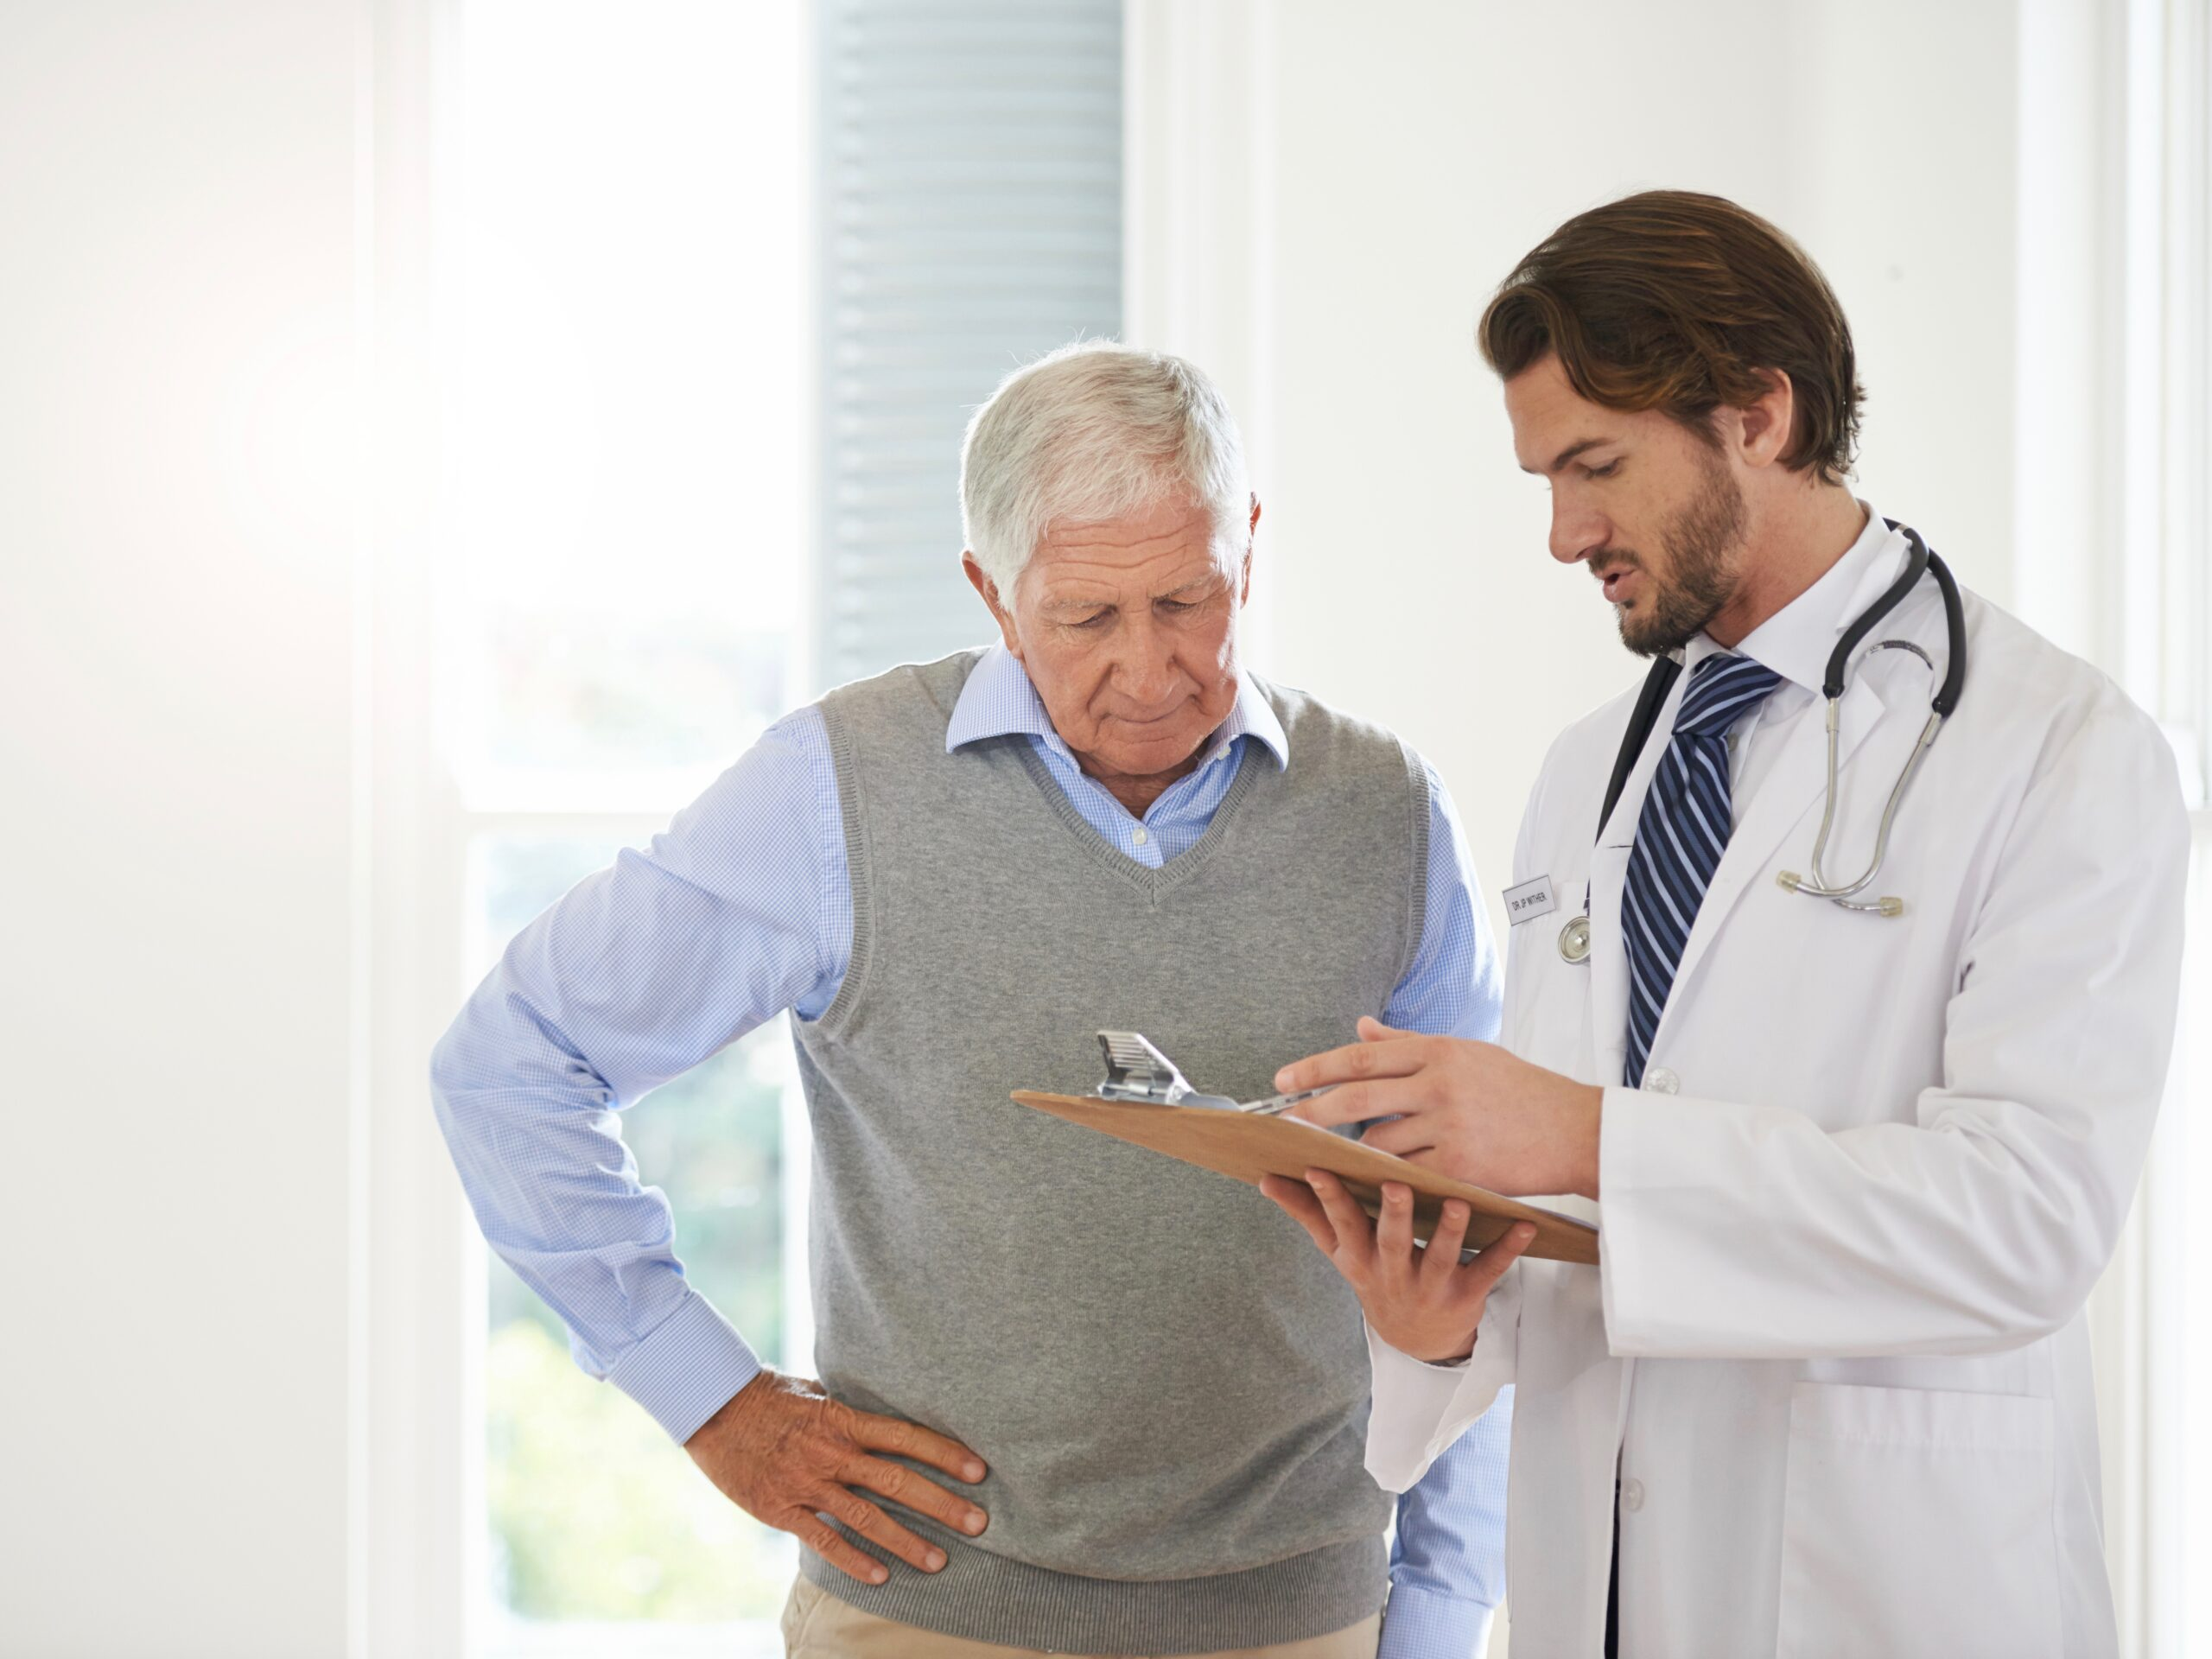 Championing research in Primary Care